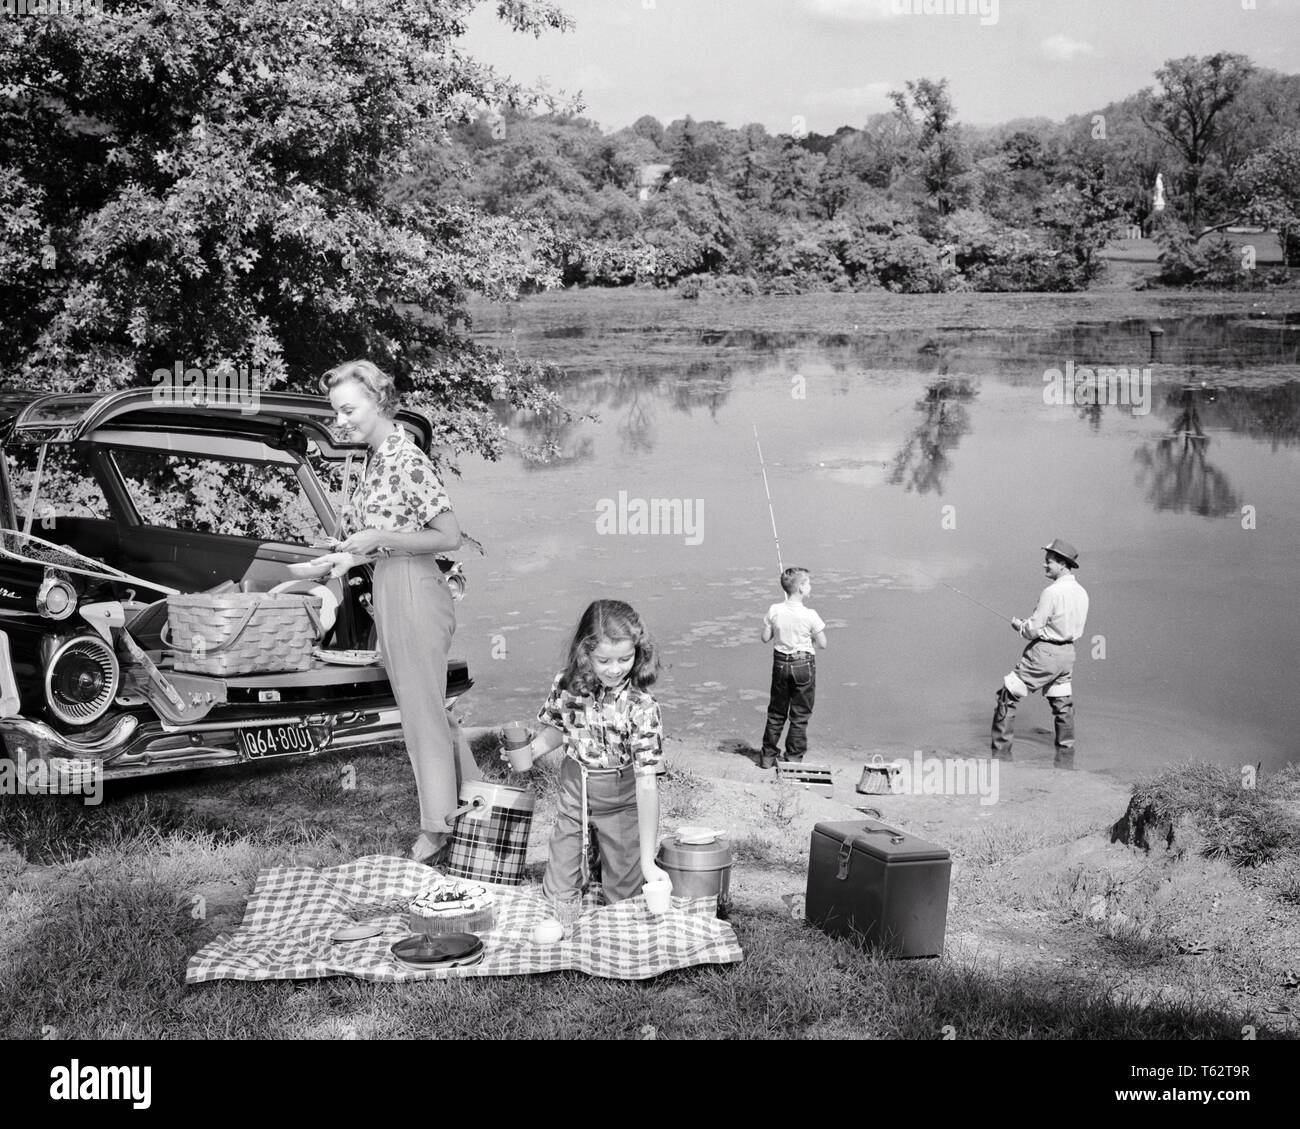 2 Antique Black /& White Photo Family Of 4 Adult Sisters and Boy On Lake In Boat;Landscape;Outdoors